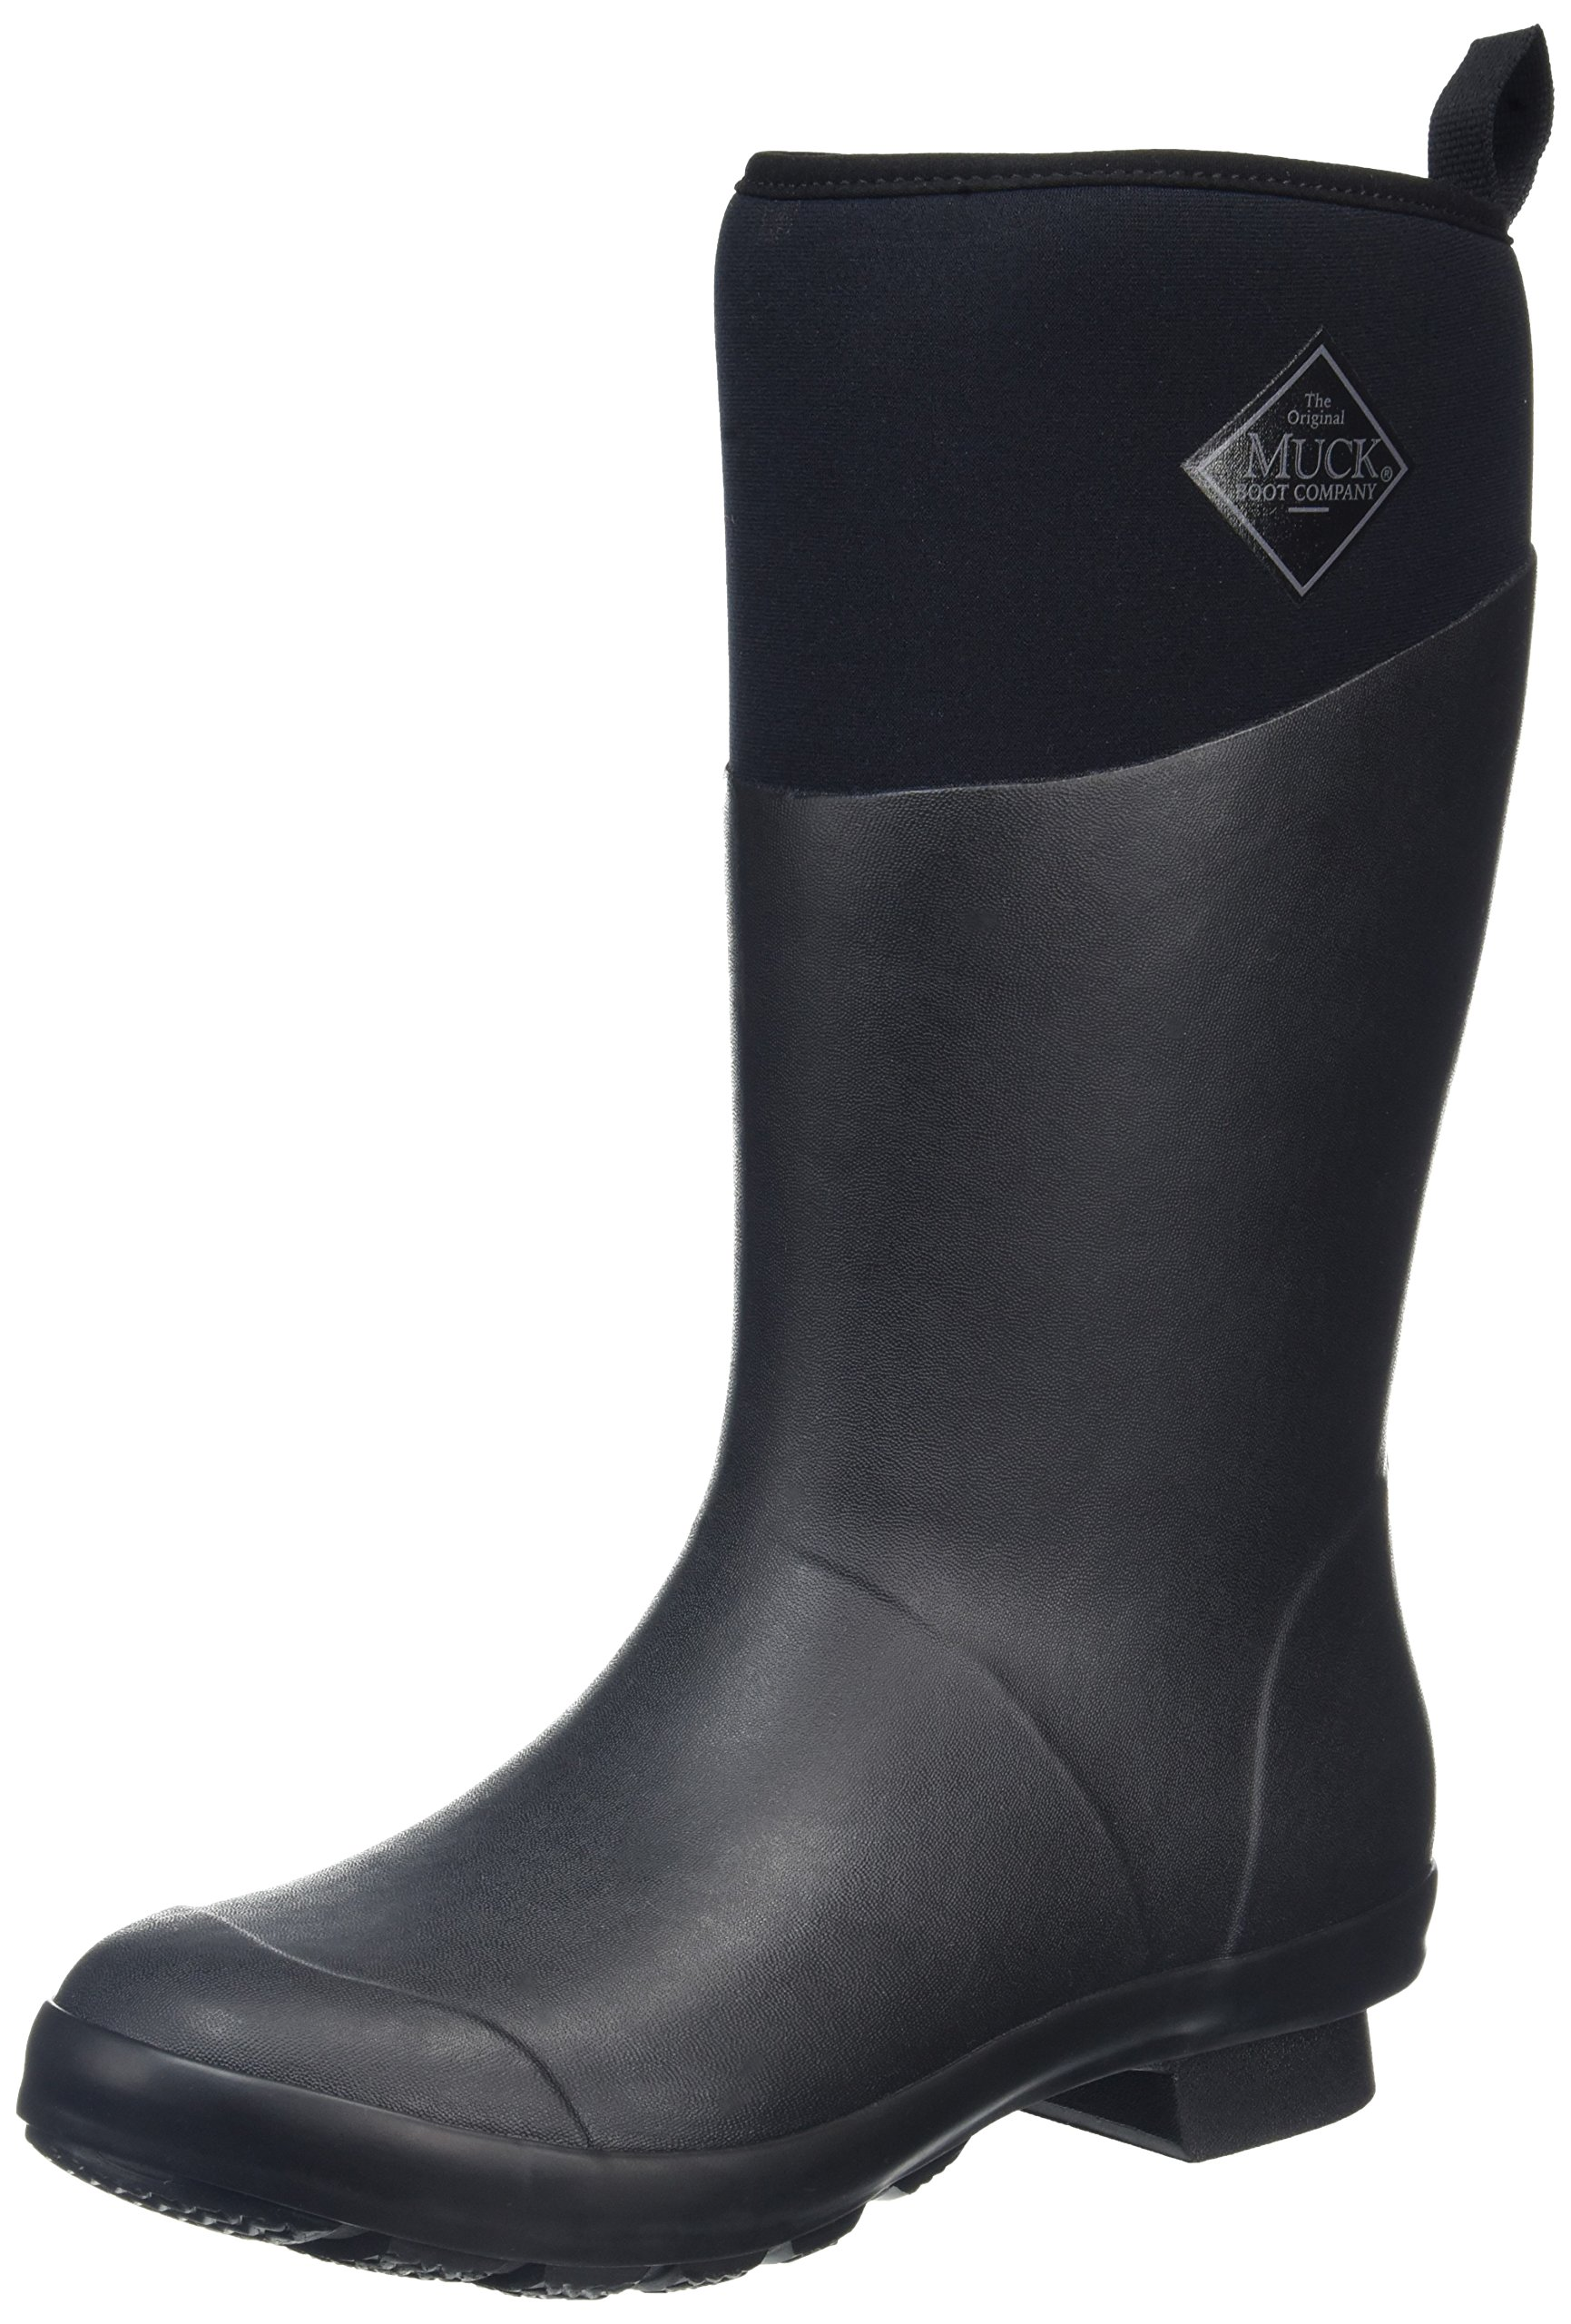 Muck Boot Women's Tremont Wellie Mid Snow Boot